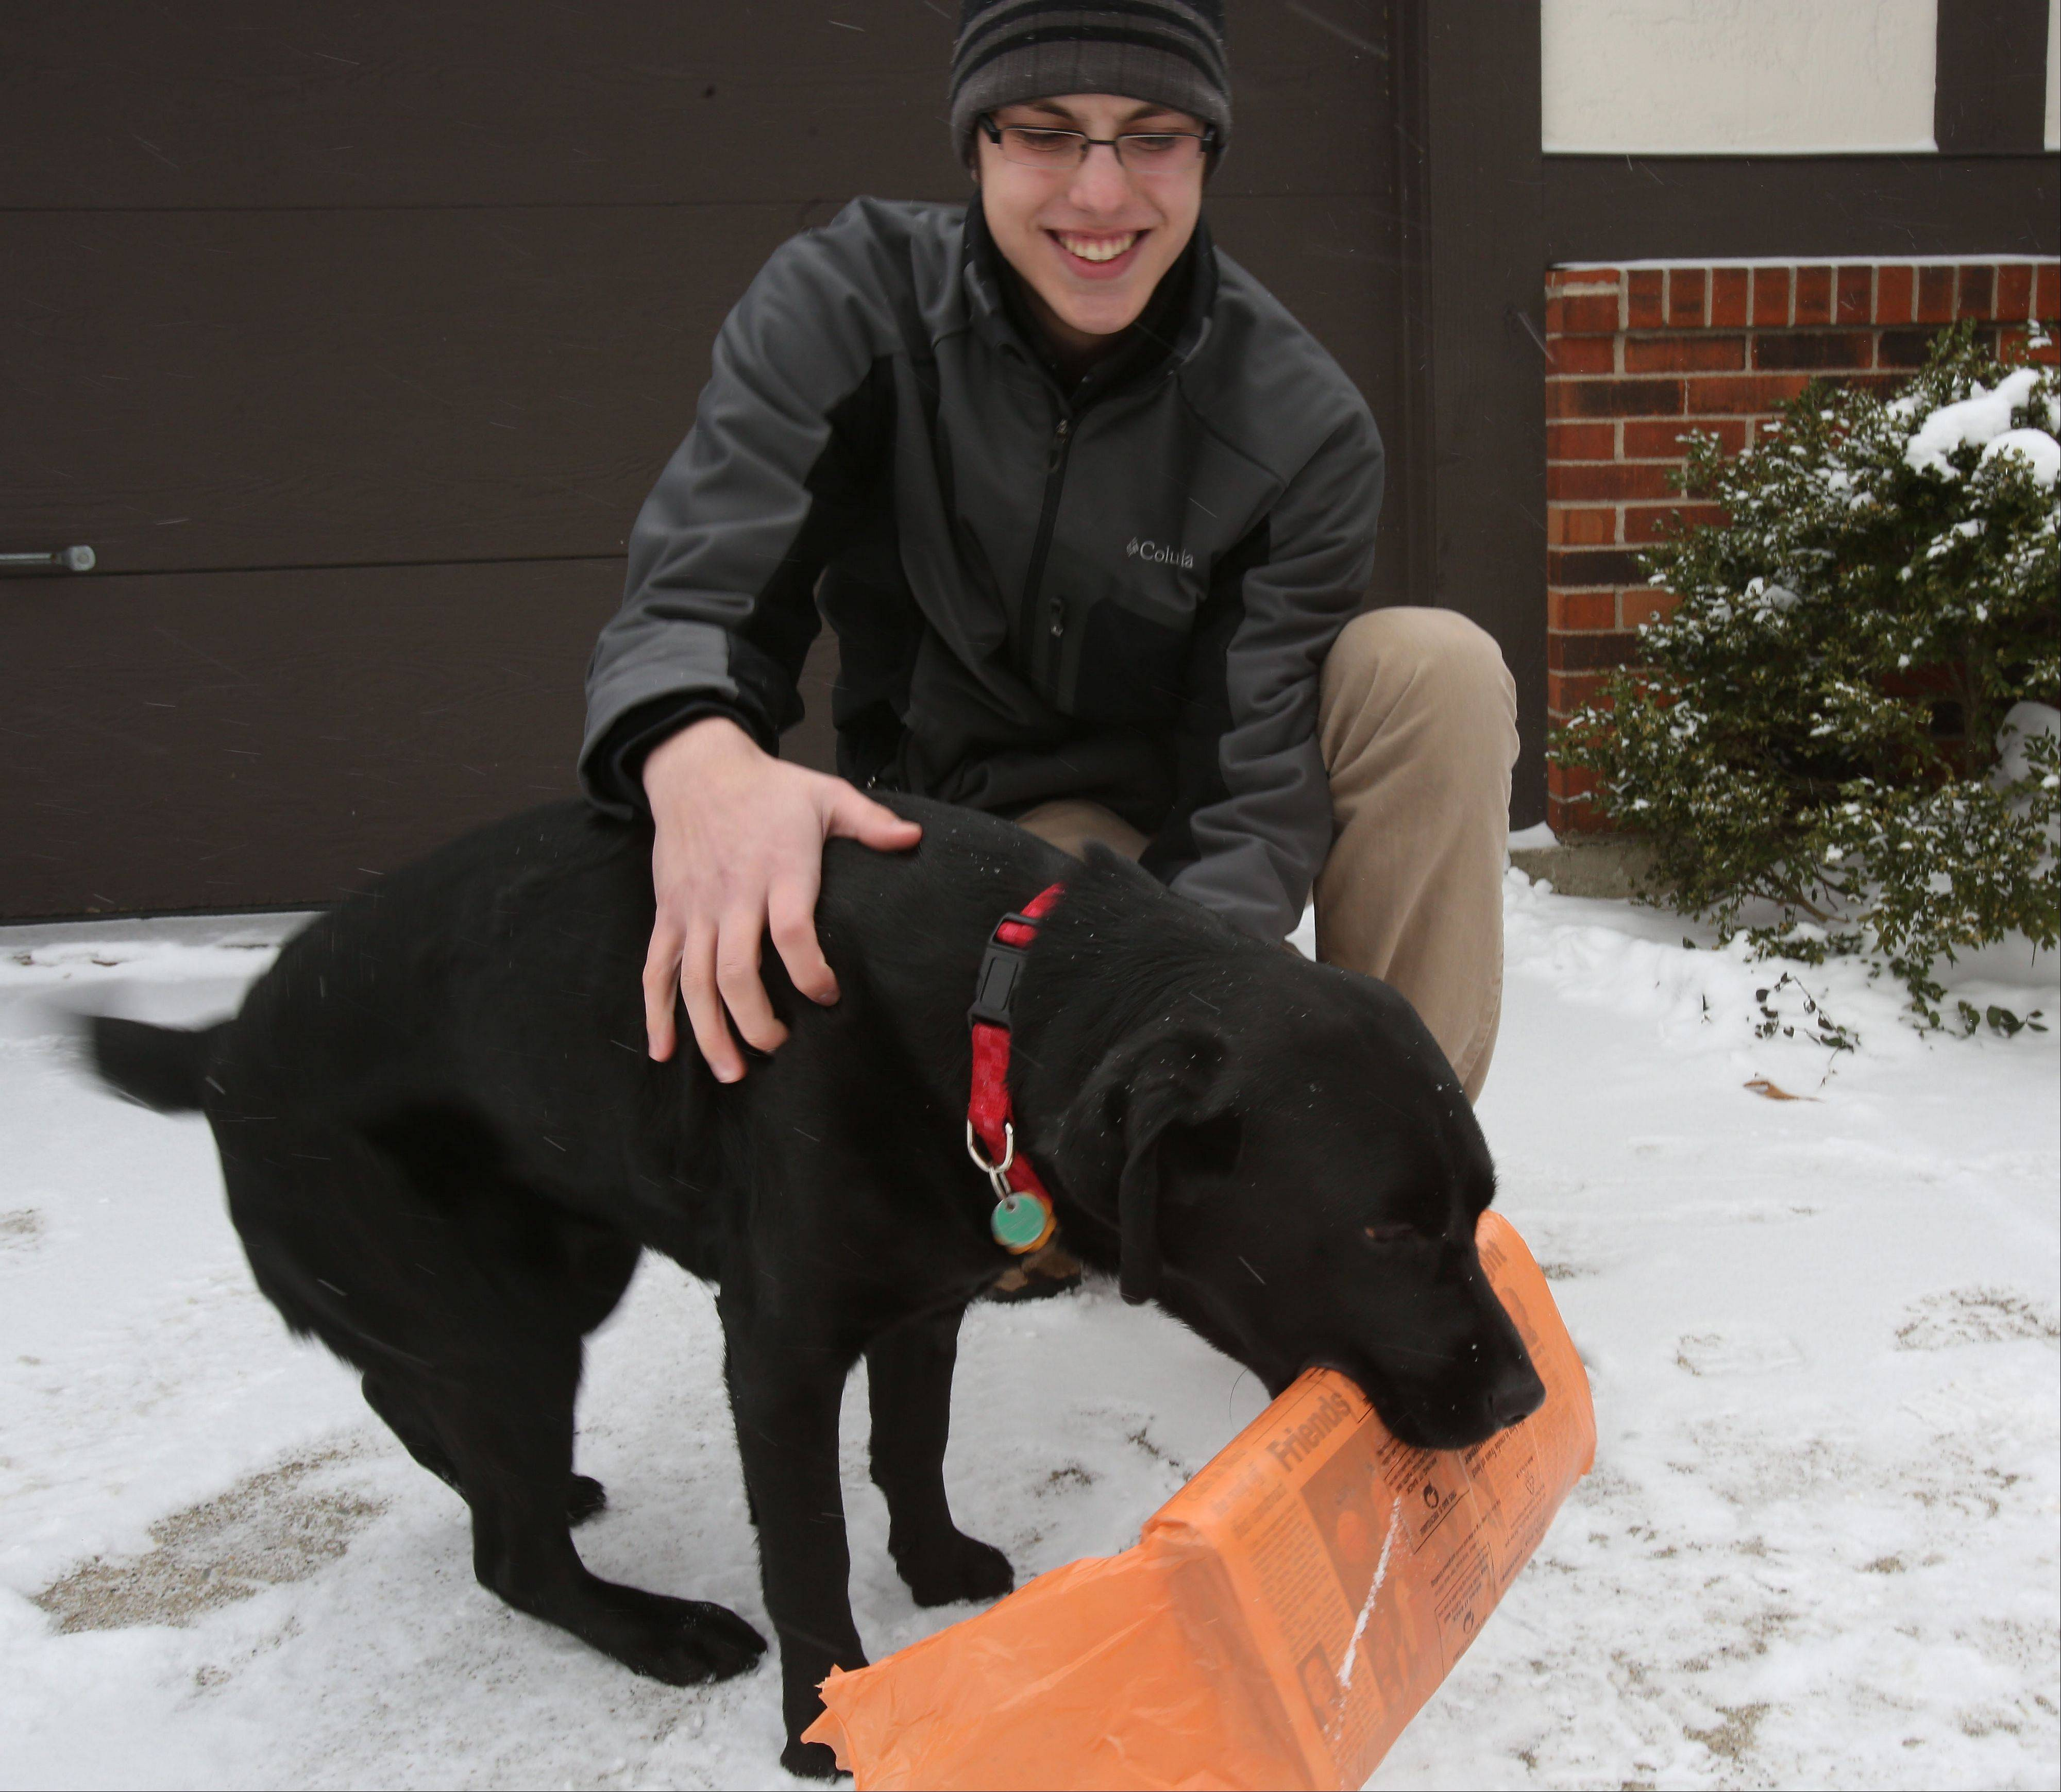 Jonathon Guse, 15, greets Morgan, who fetches the newspaper every day at their home in Glen Ellyn.